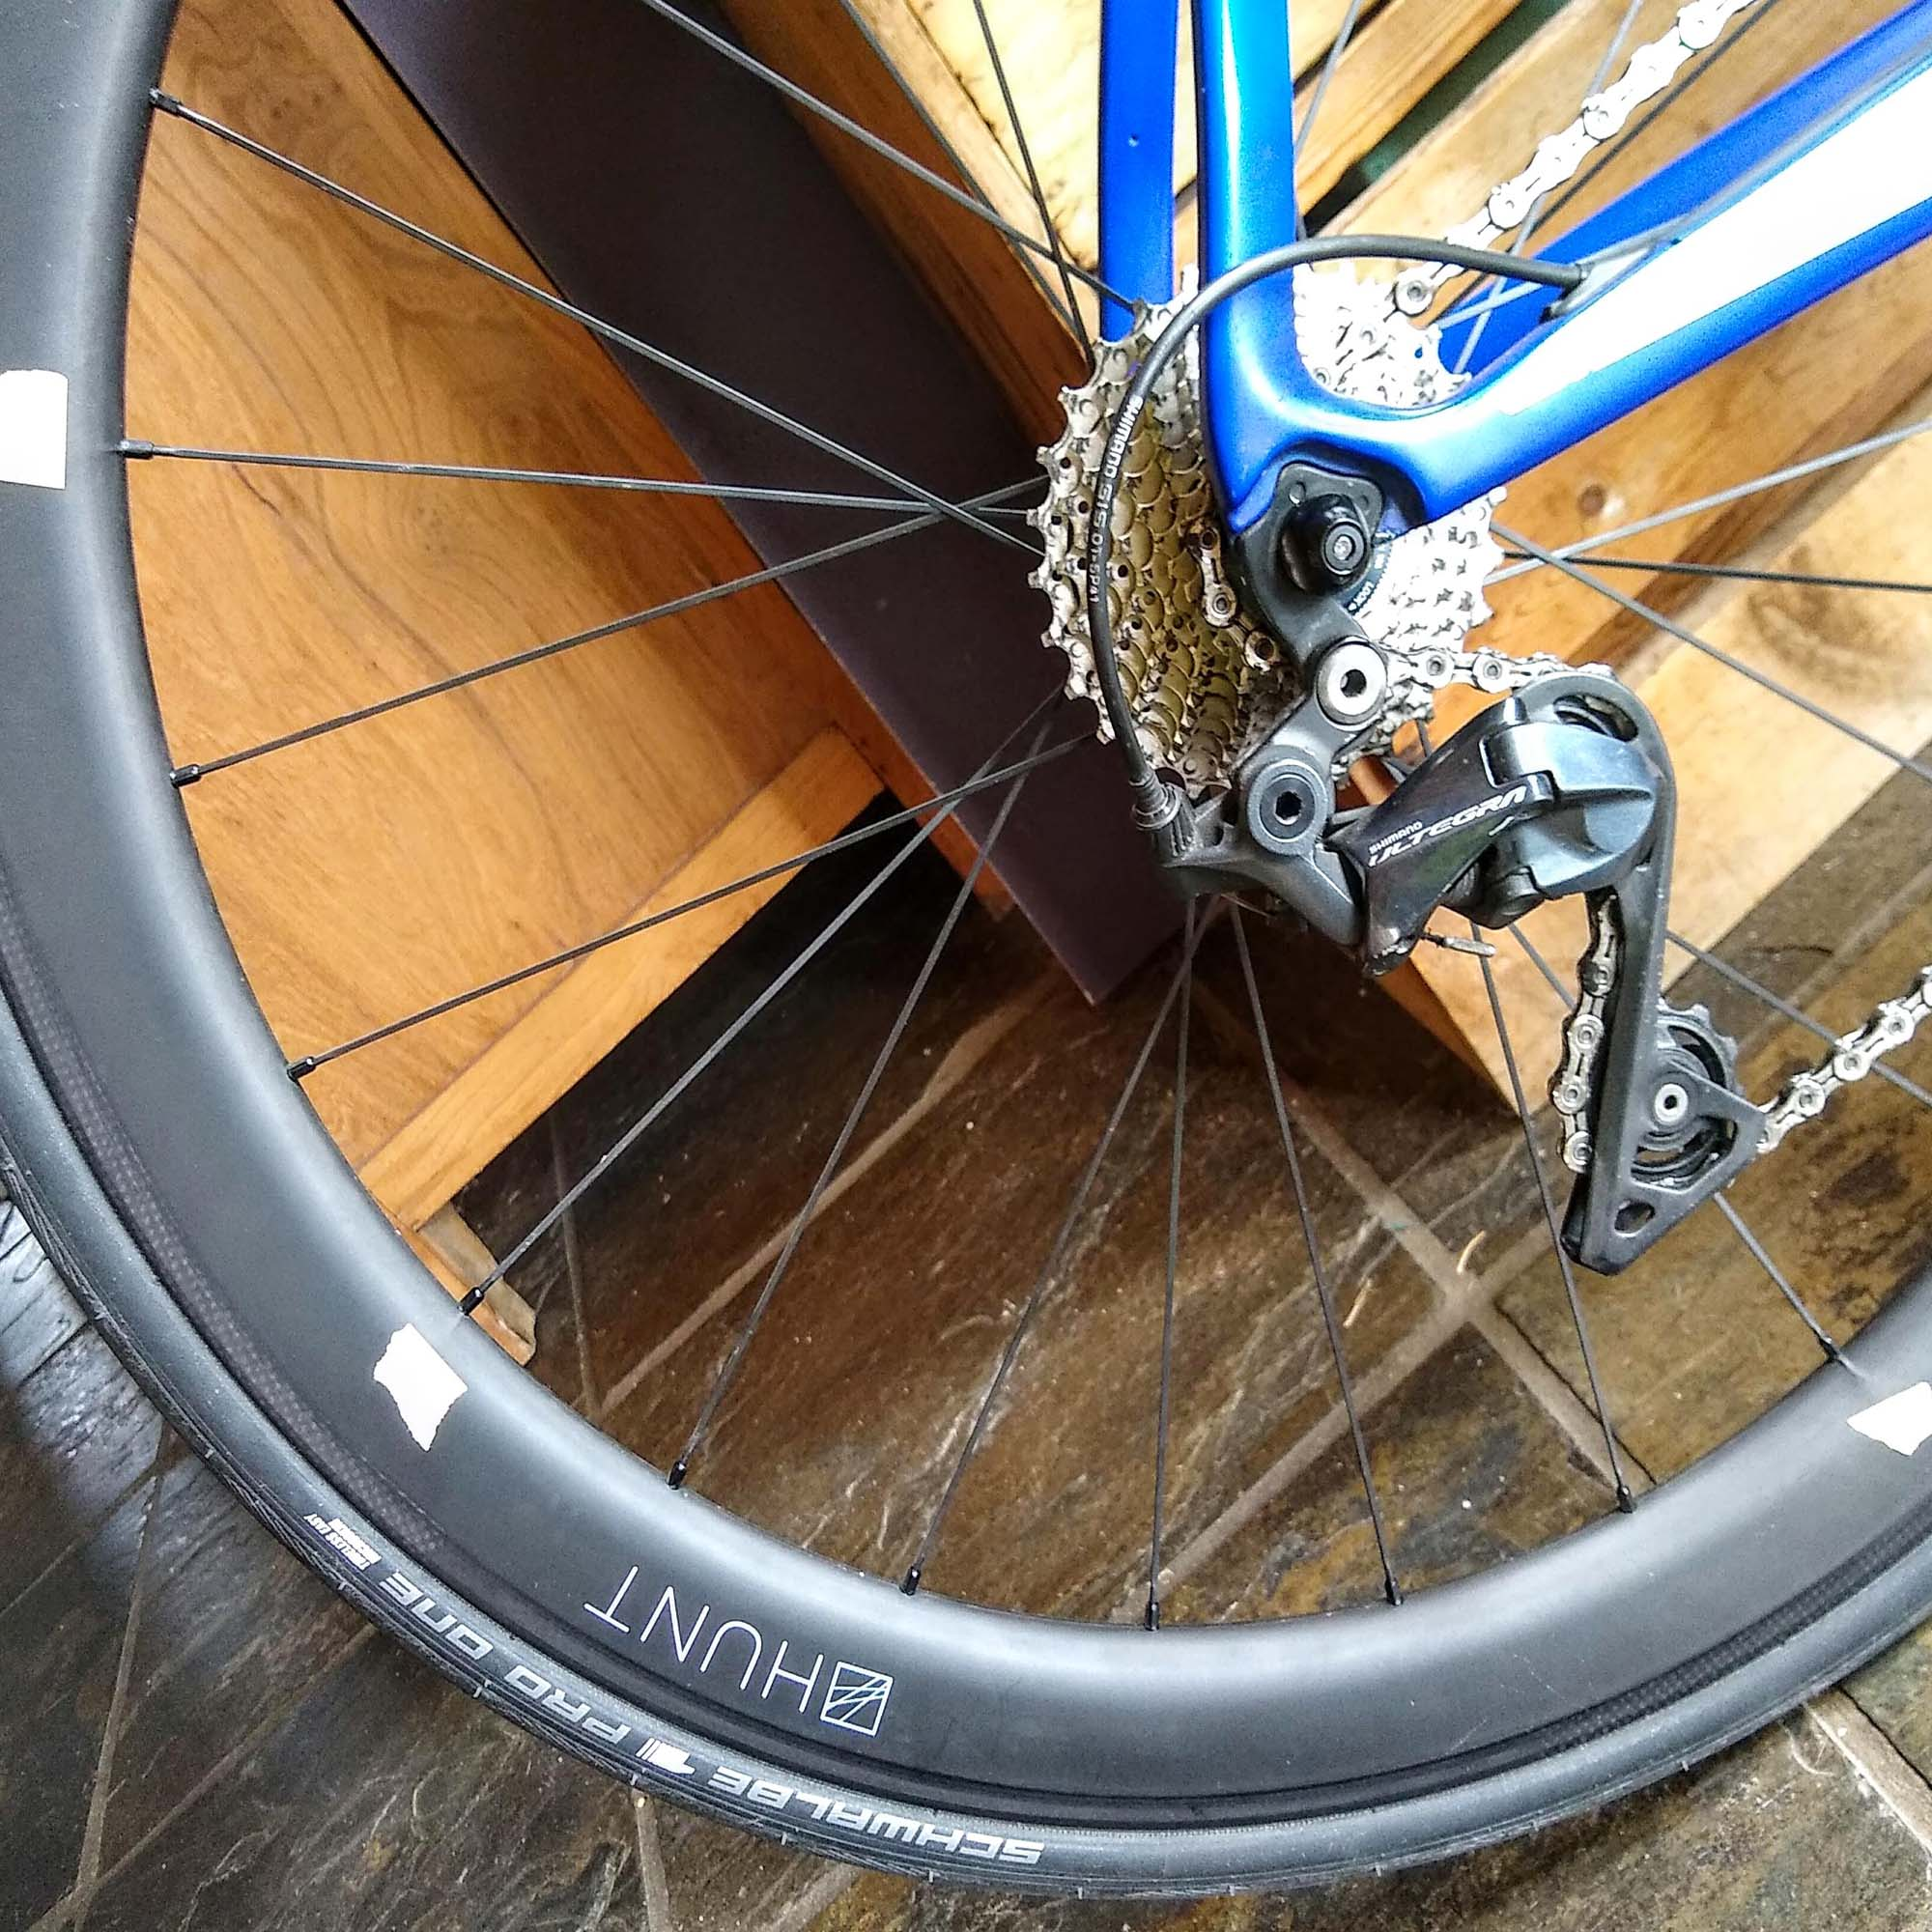 Hunt 50 Carbon wide aero wheels review